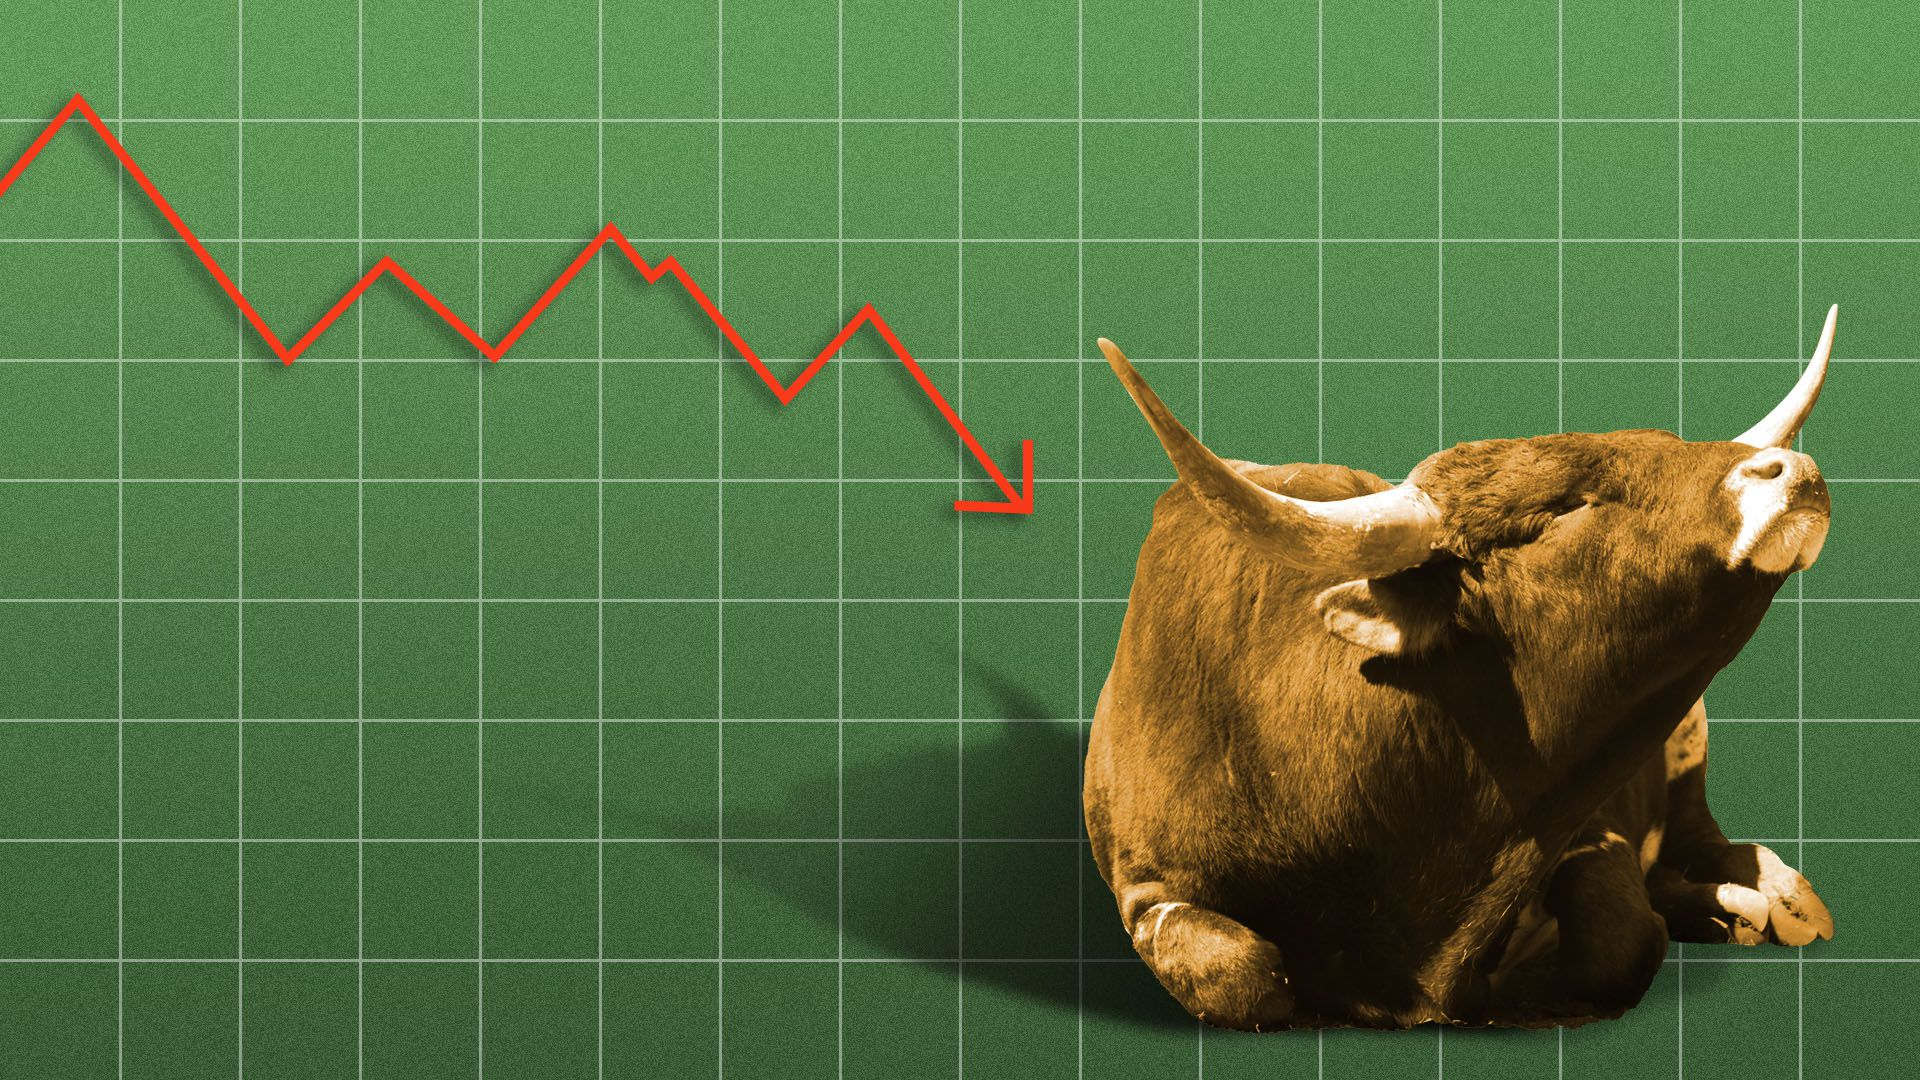 Illustration of a bull ignoring a downward trend line on a chart